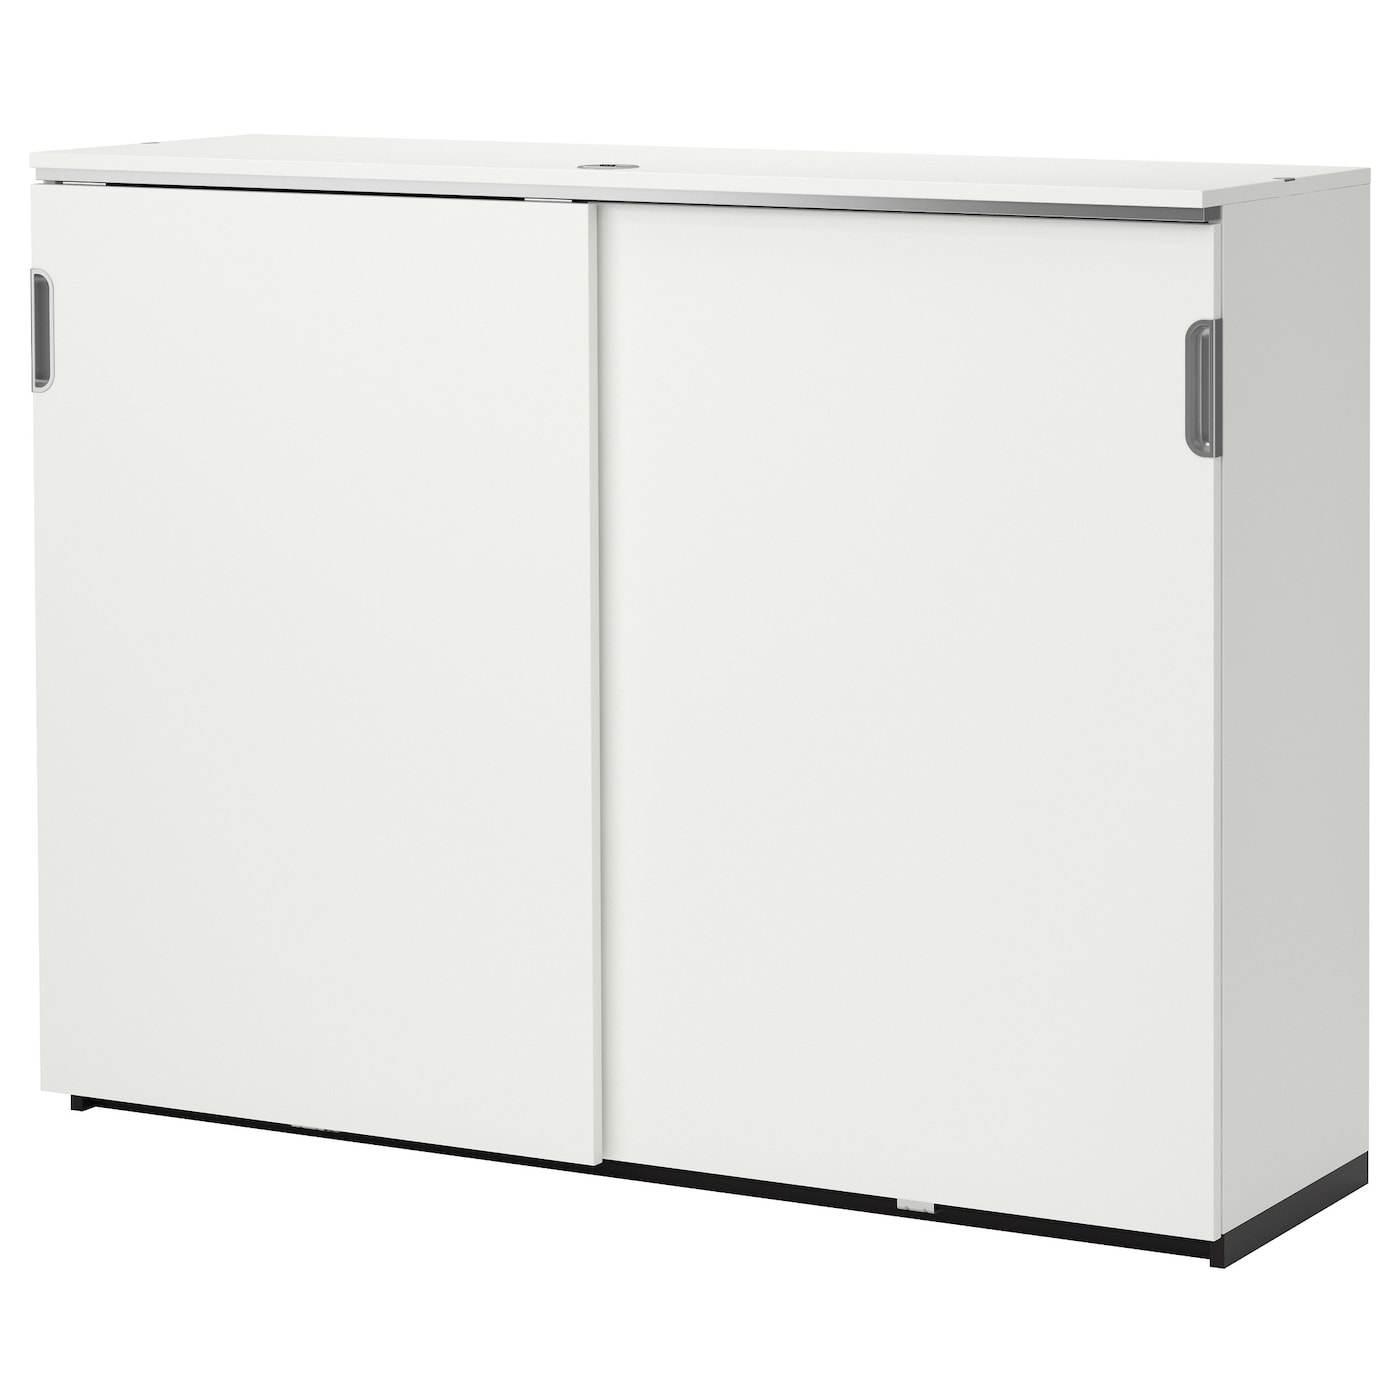 Galant Cabinet With Sliding Doors White 160x120 Cm Ikea